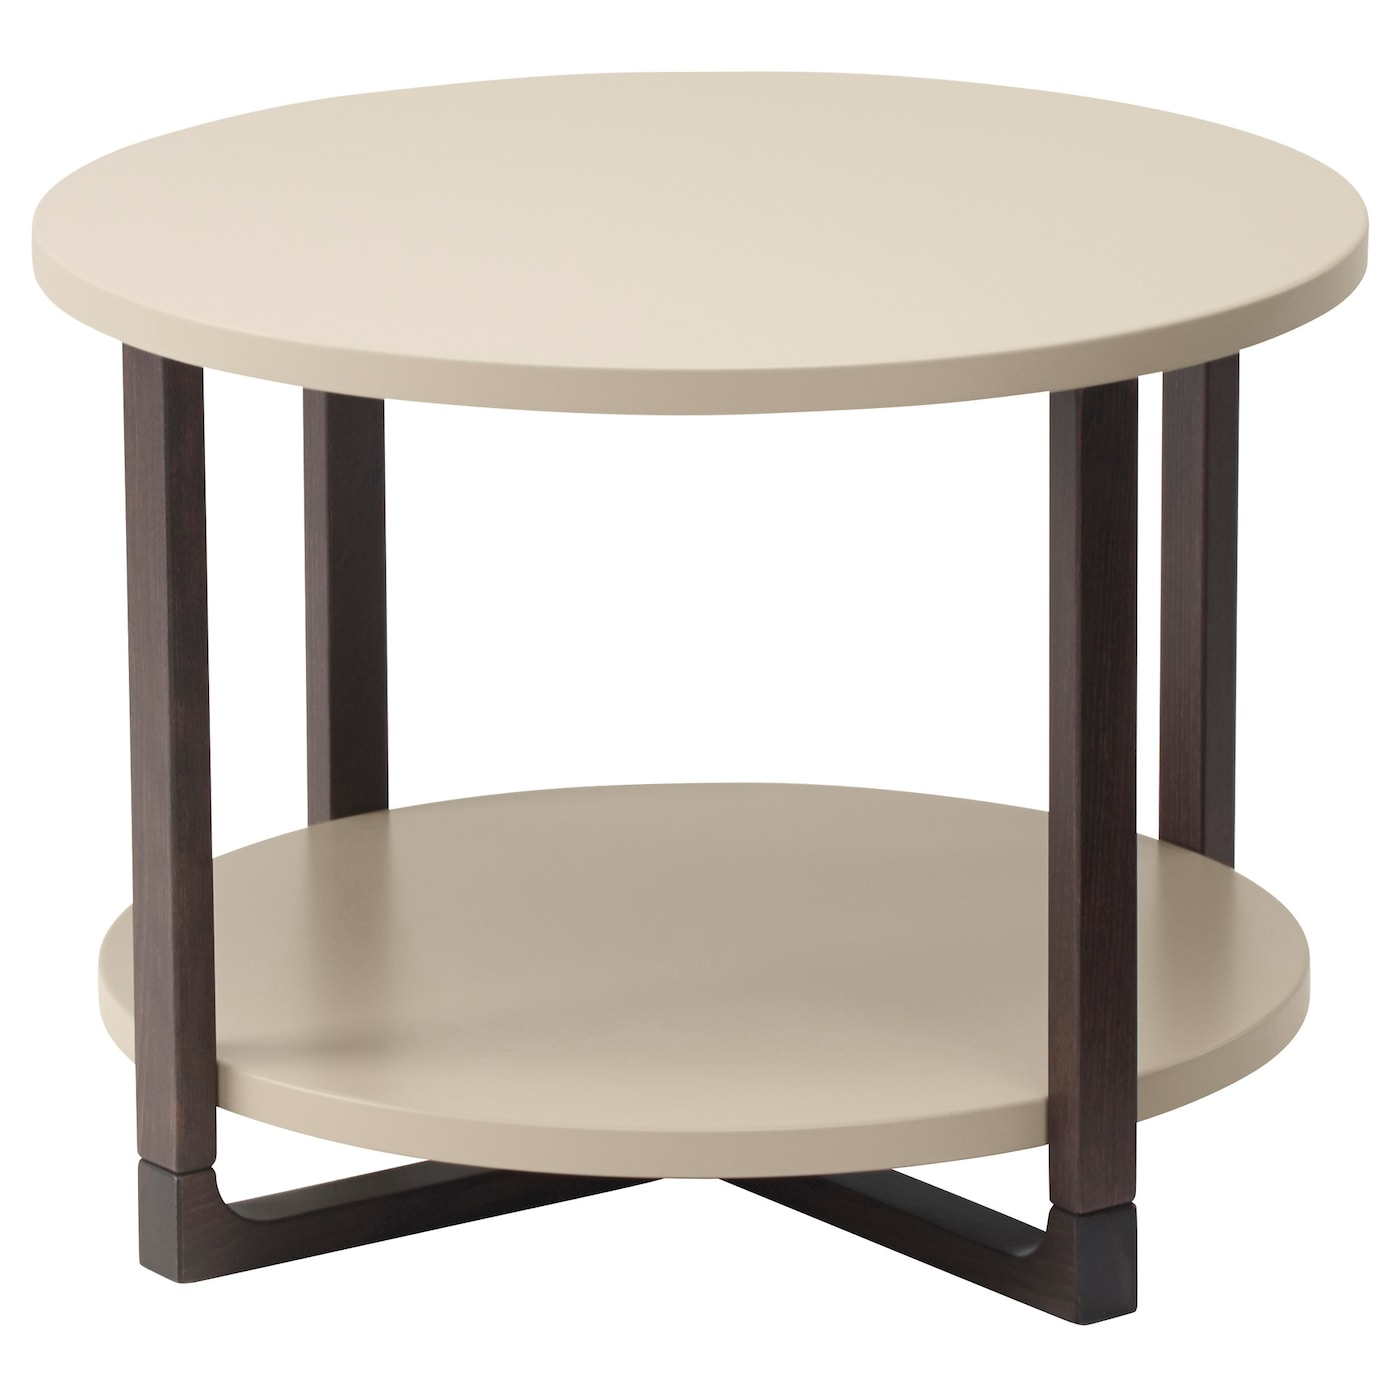 Rissna side table beige 60 cm ikea - Tables basse design ...